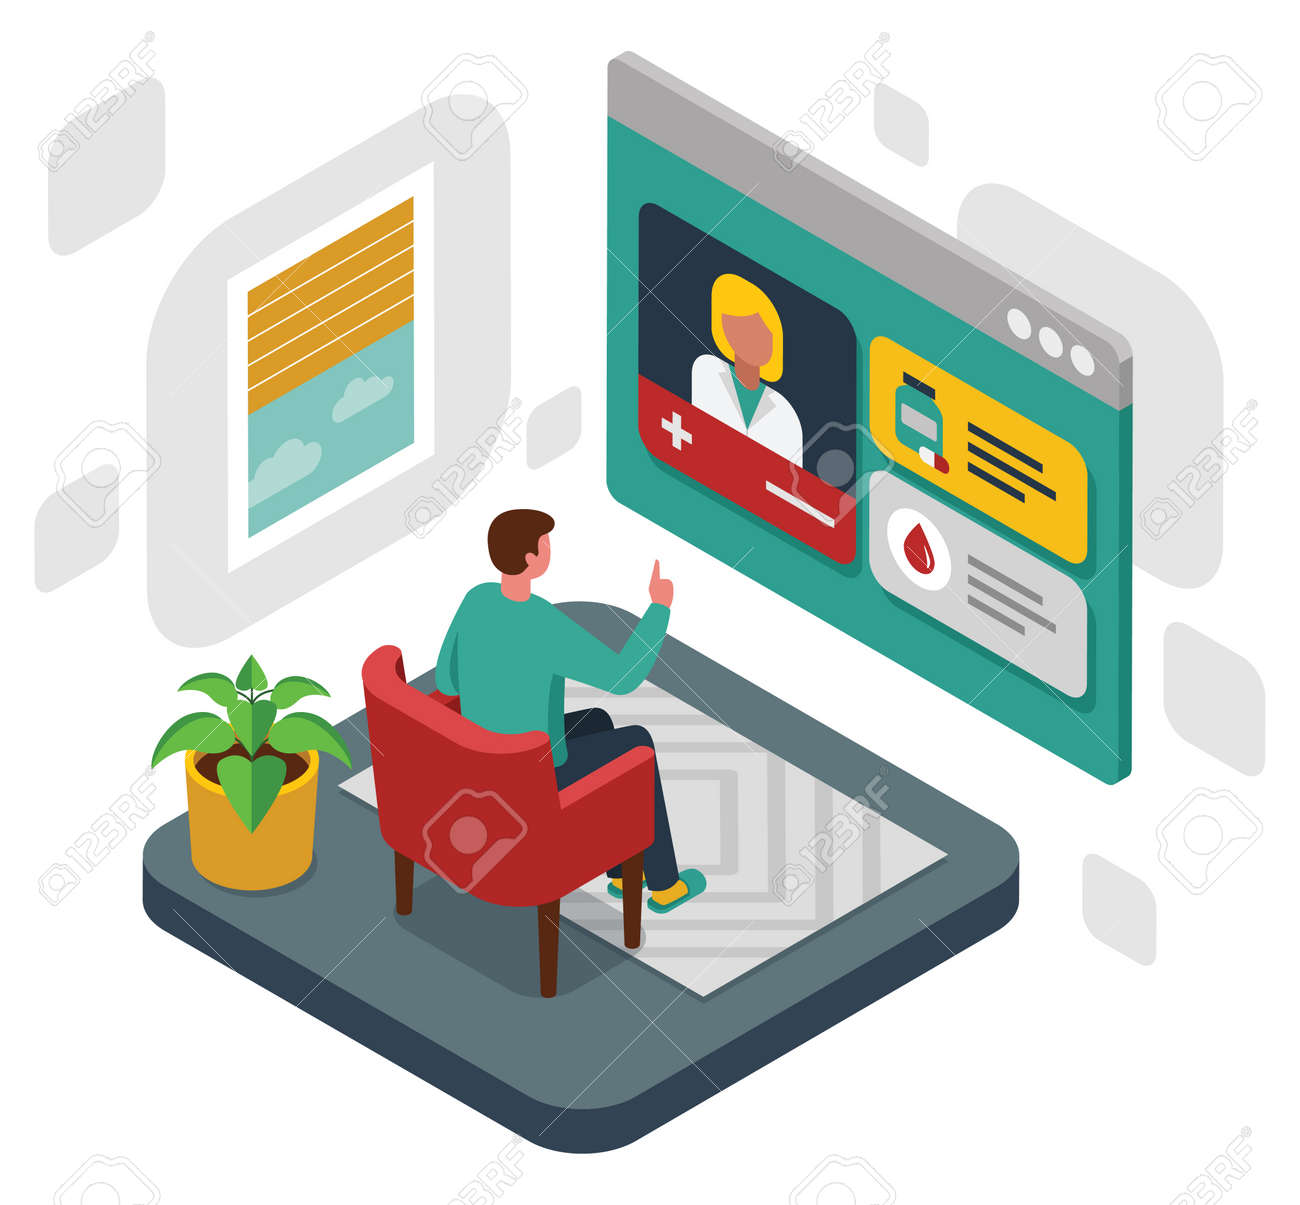 Colourful isometric illustration of online medical consultation - 168742715